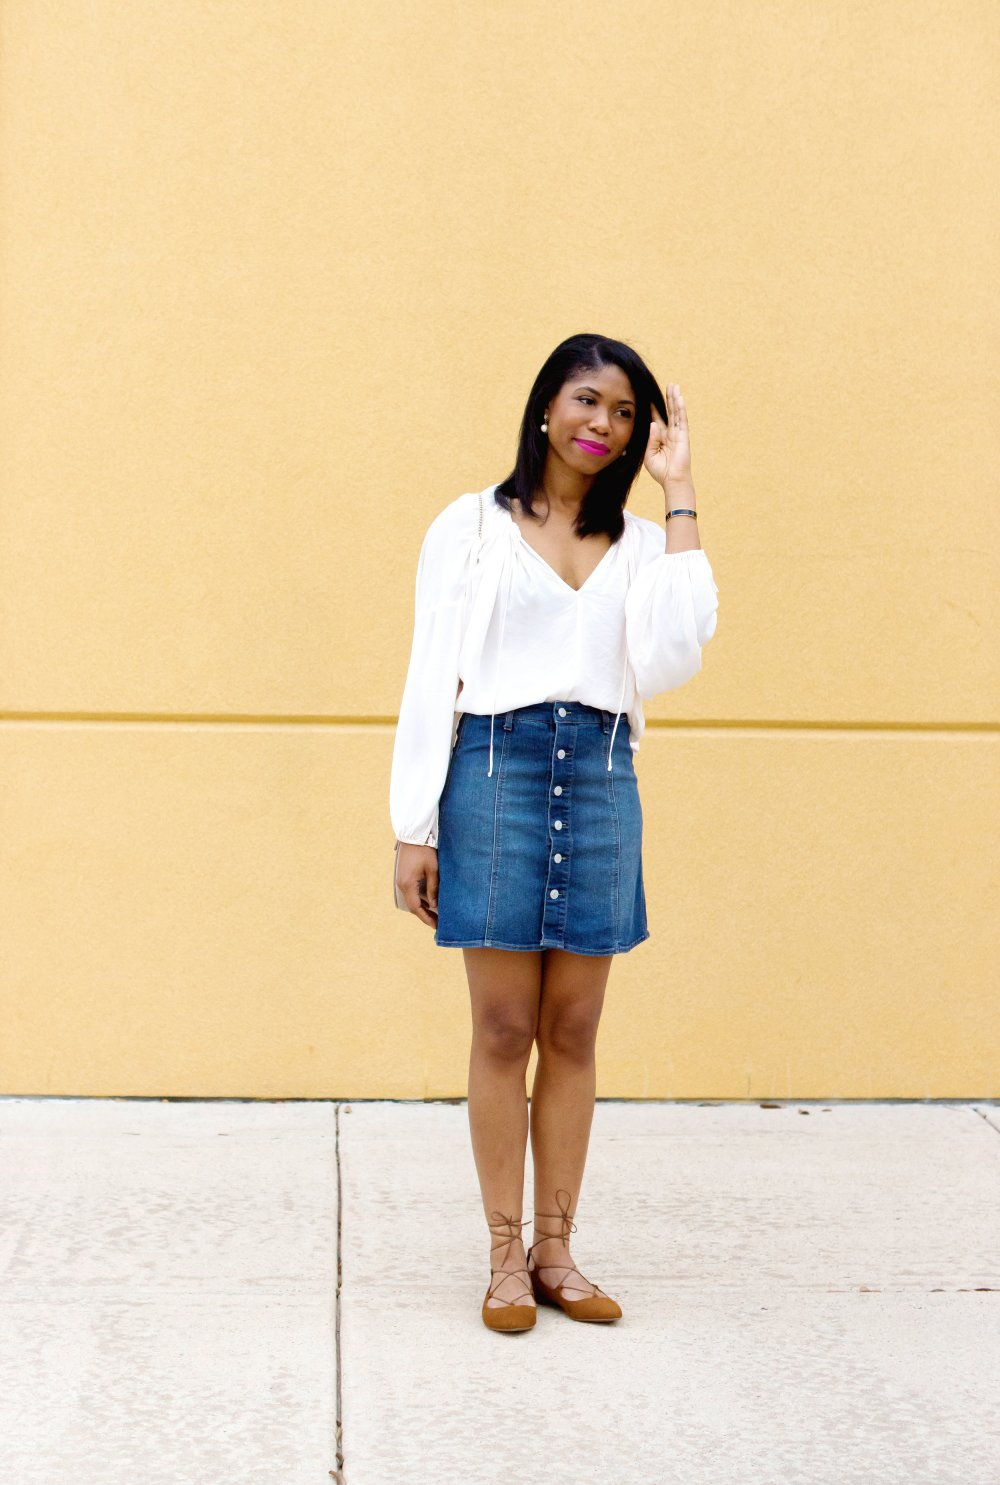 denim skirt style dallas fashion blogger stephanie taylor jackson